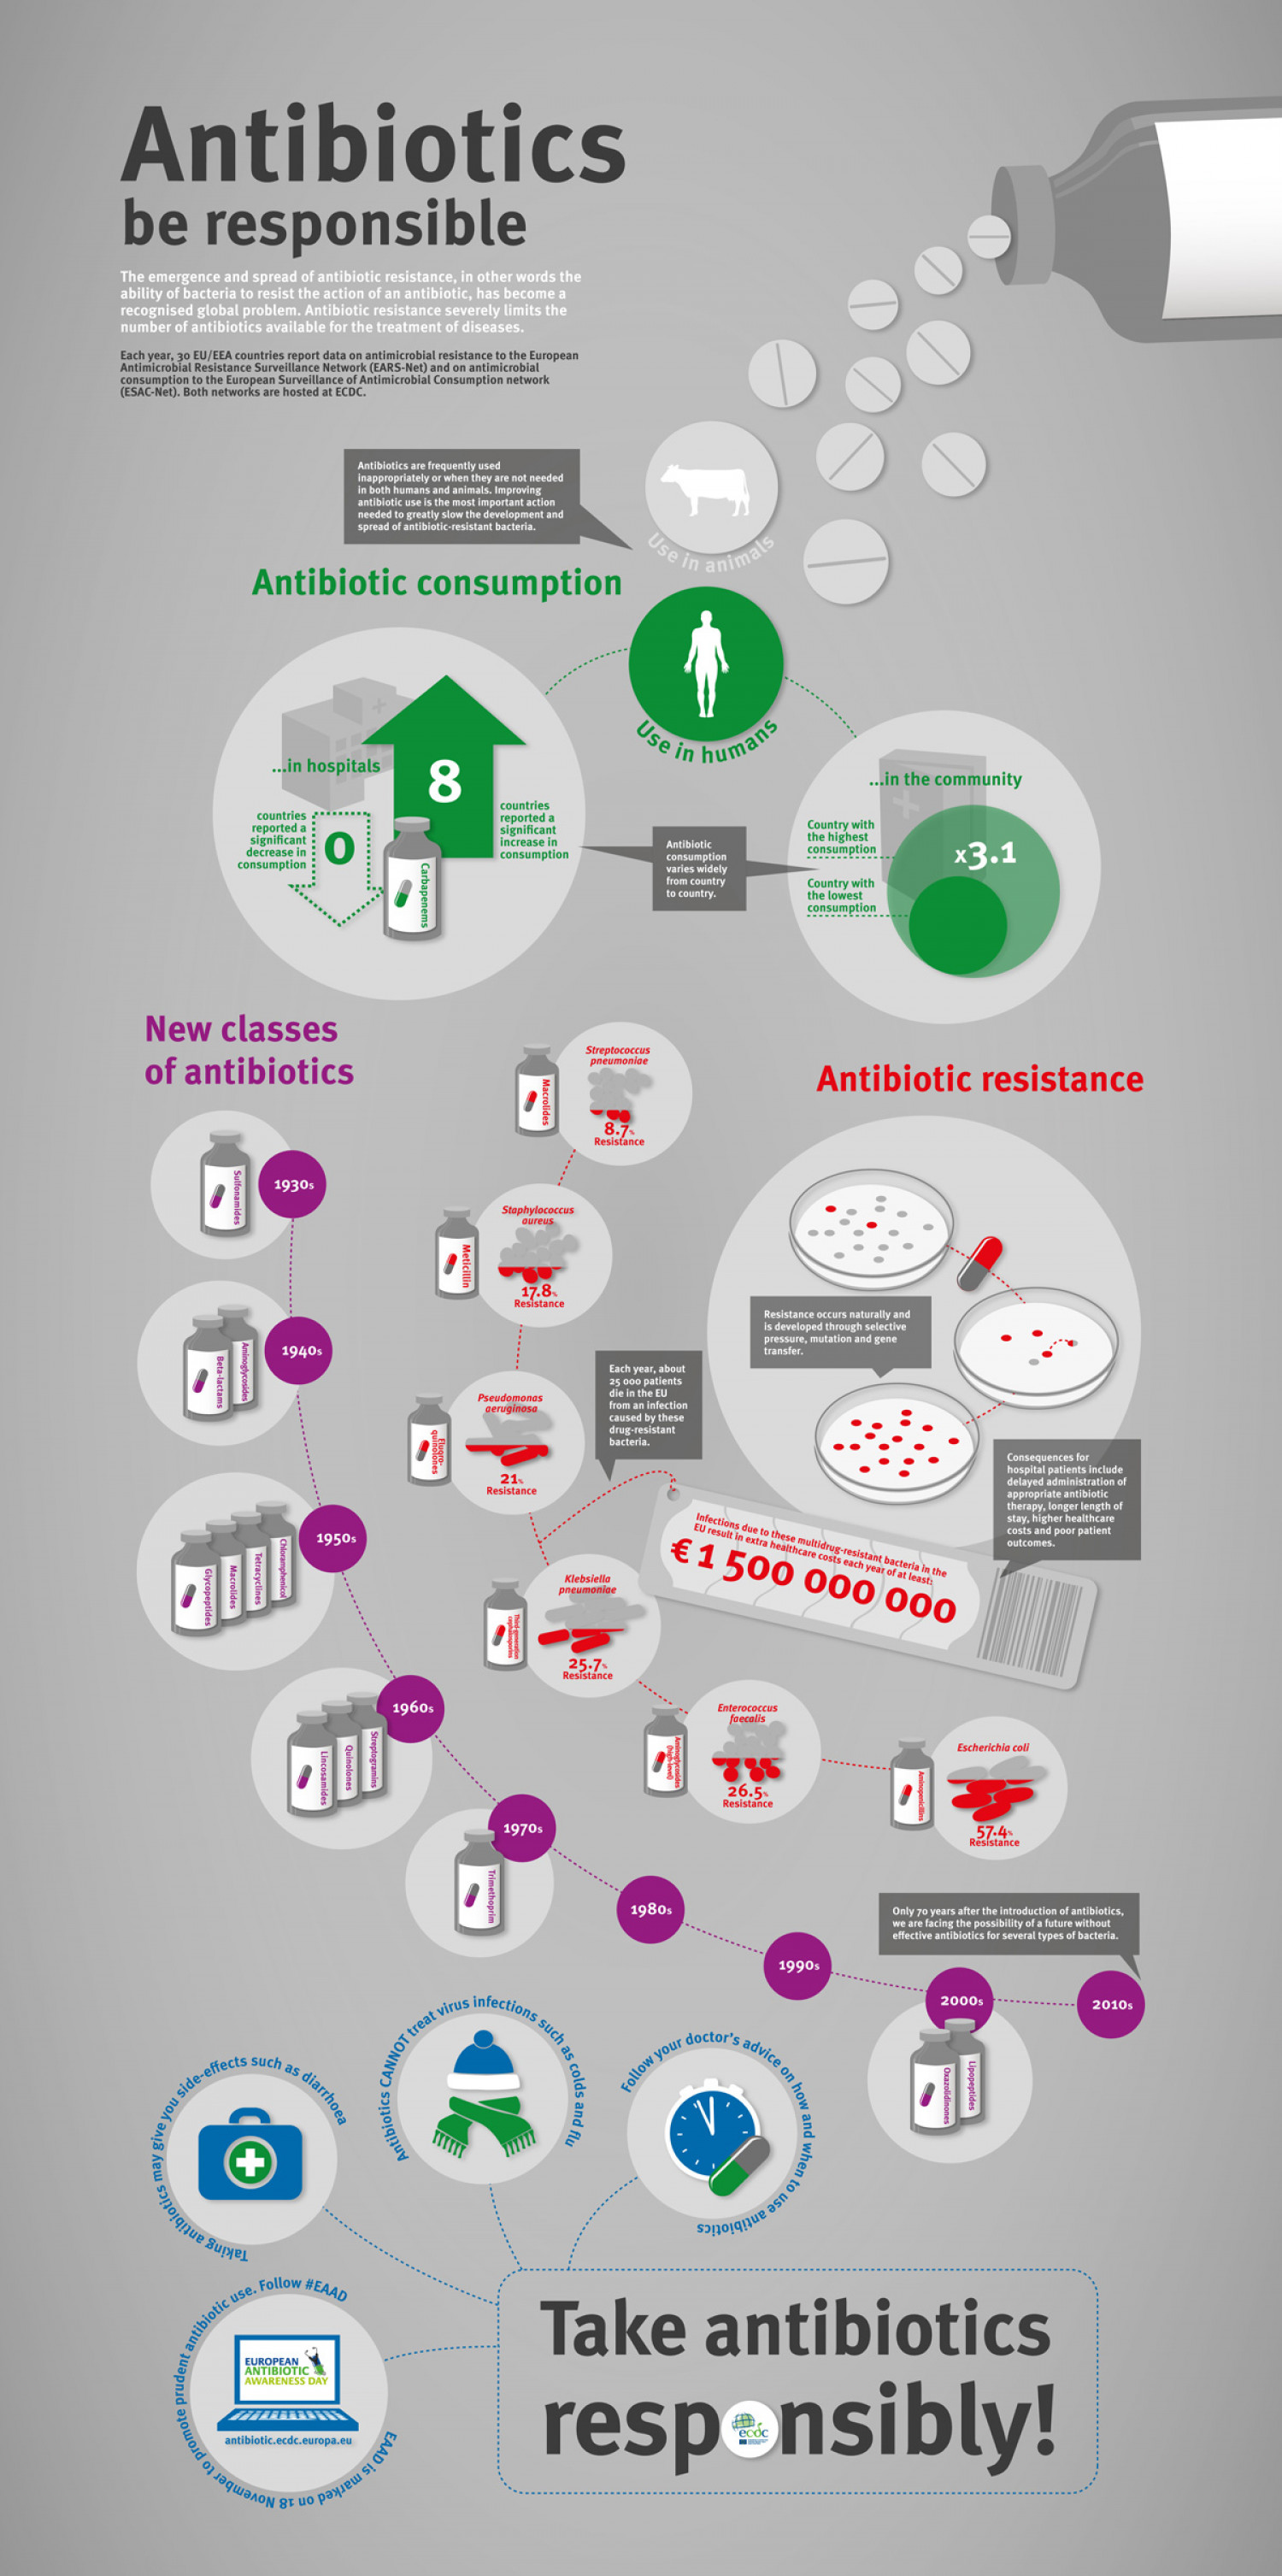 Antibiotics - be responsible Infographic